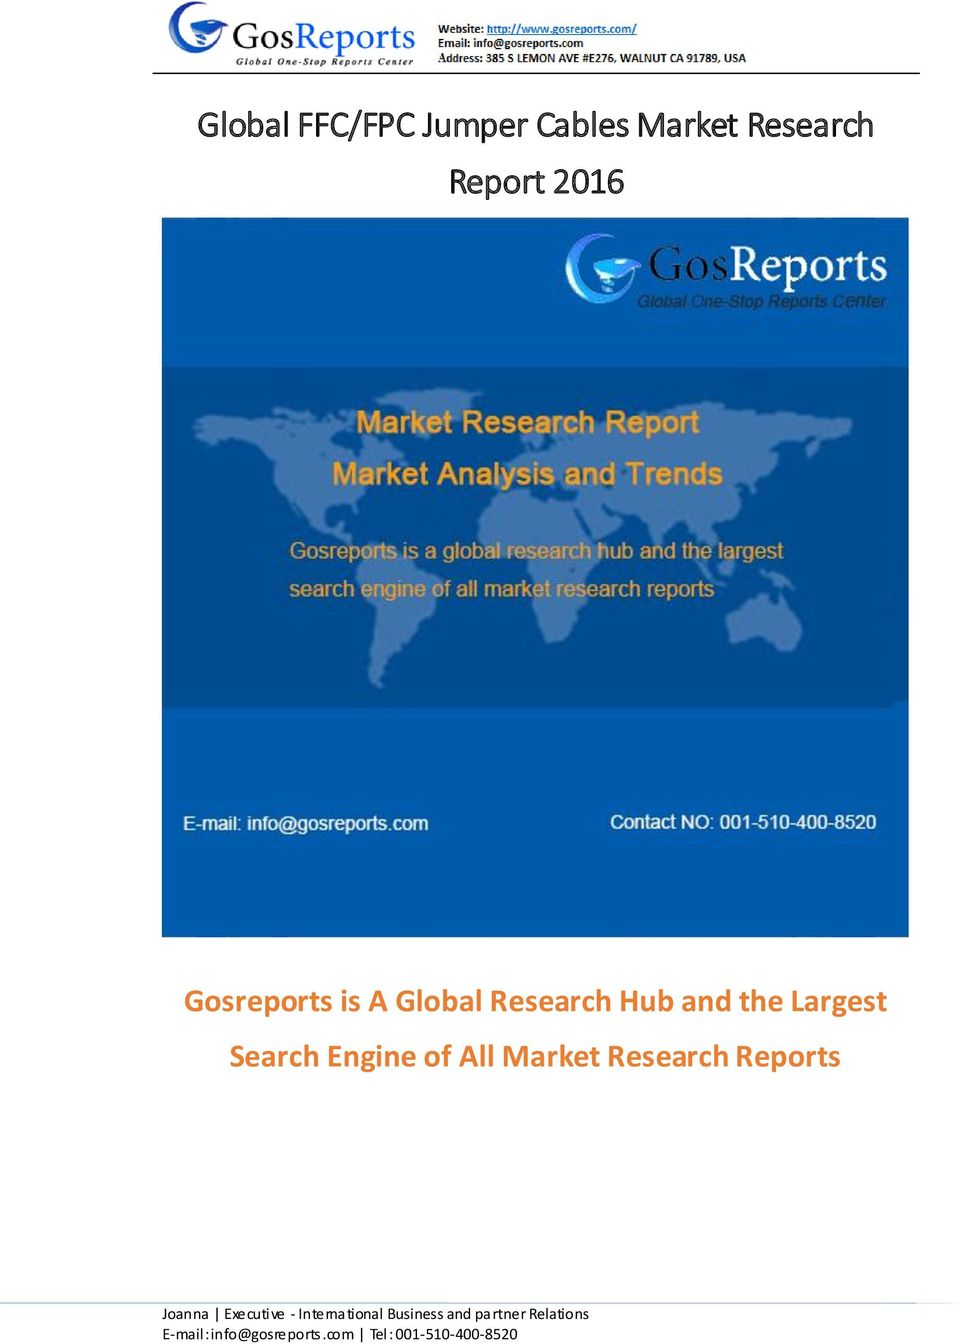 Global Research Hub and the Largest